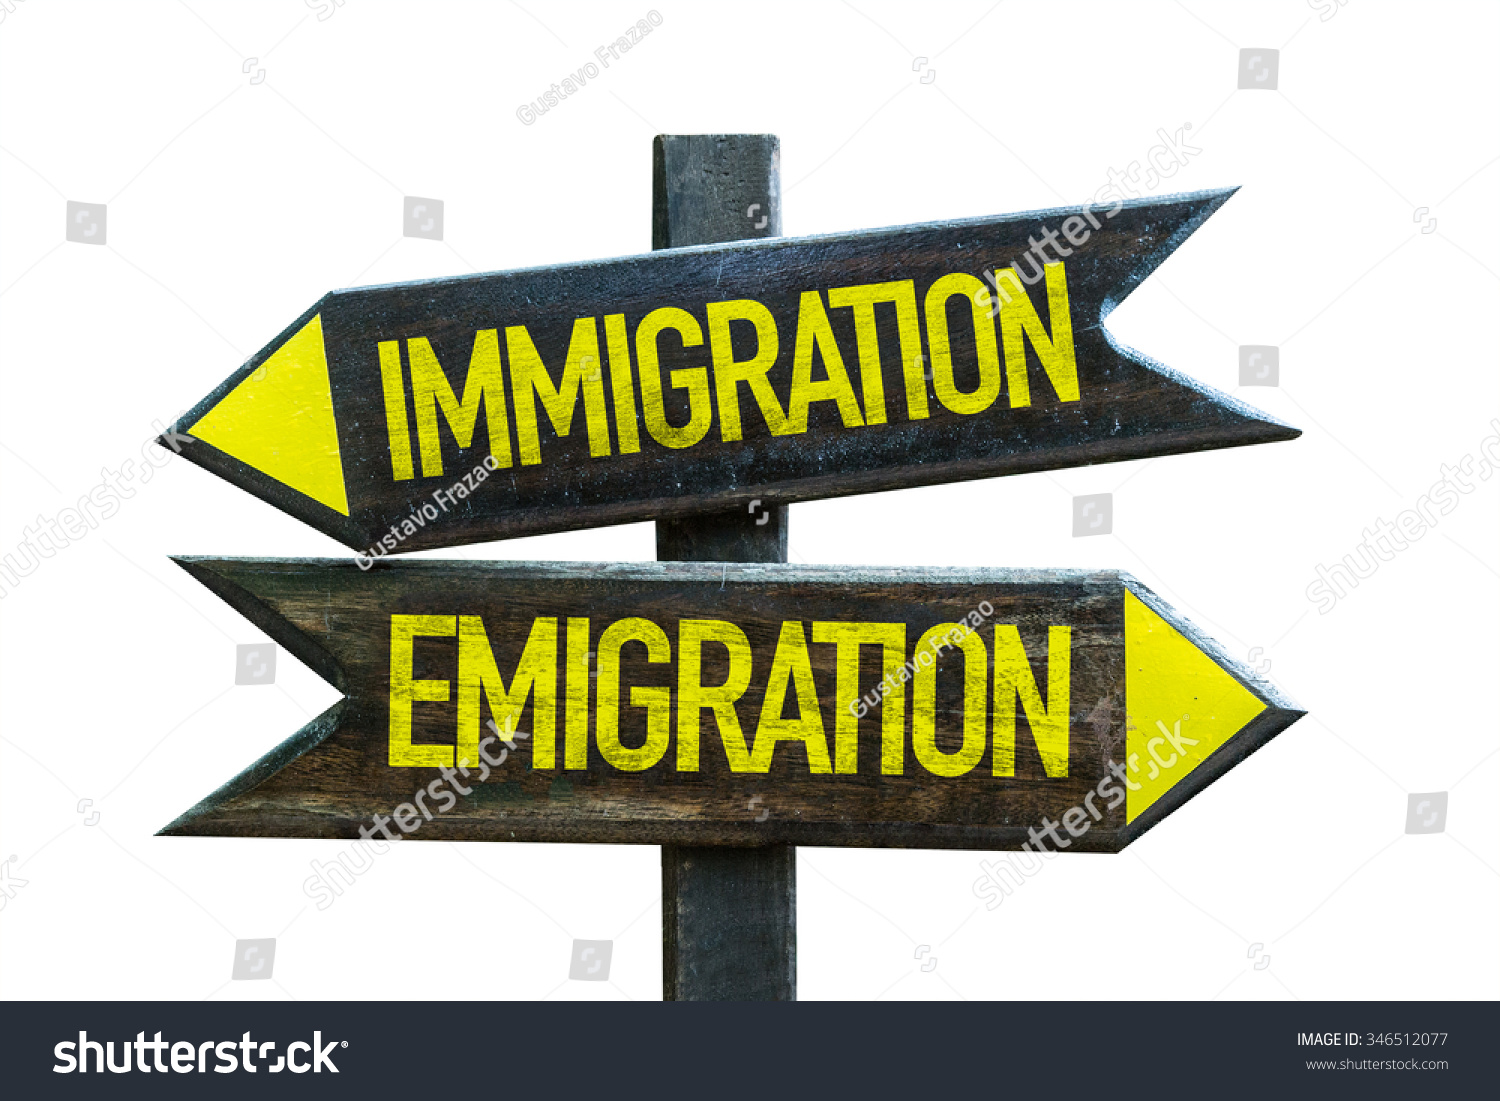 Immigration - Emigration Signpost Isolated On White Background Stock ...